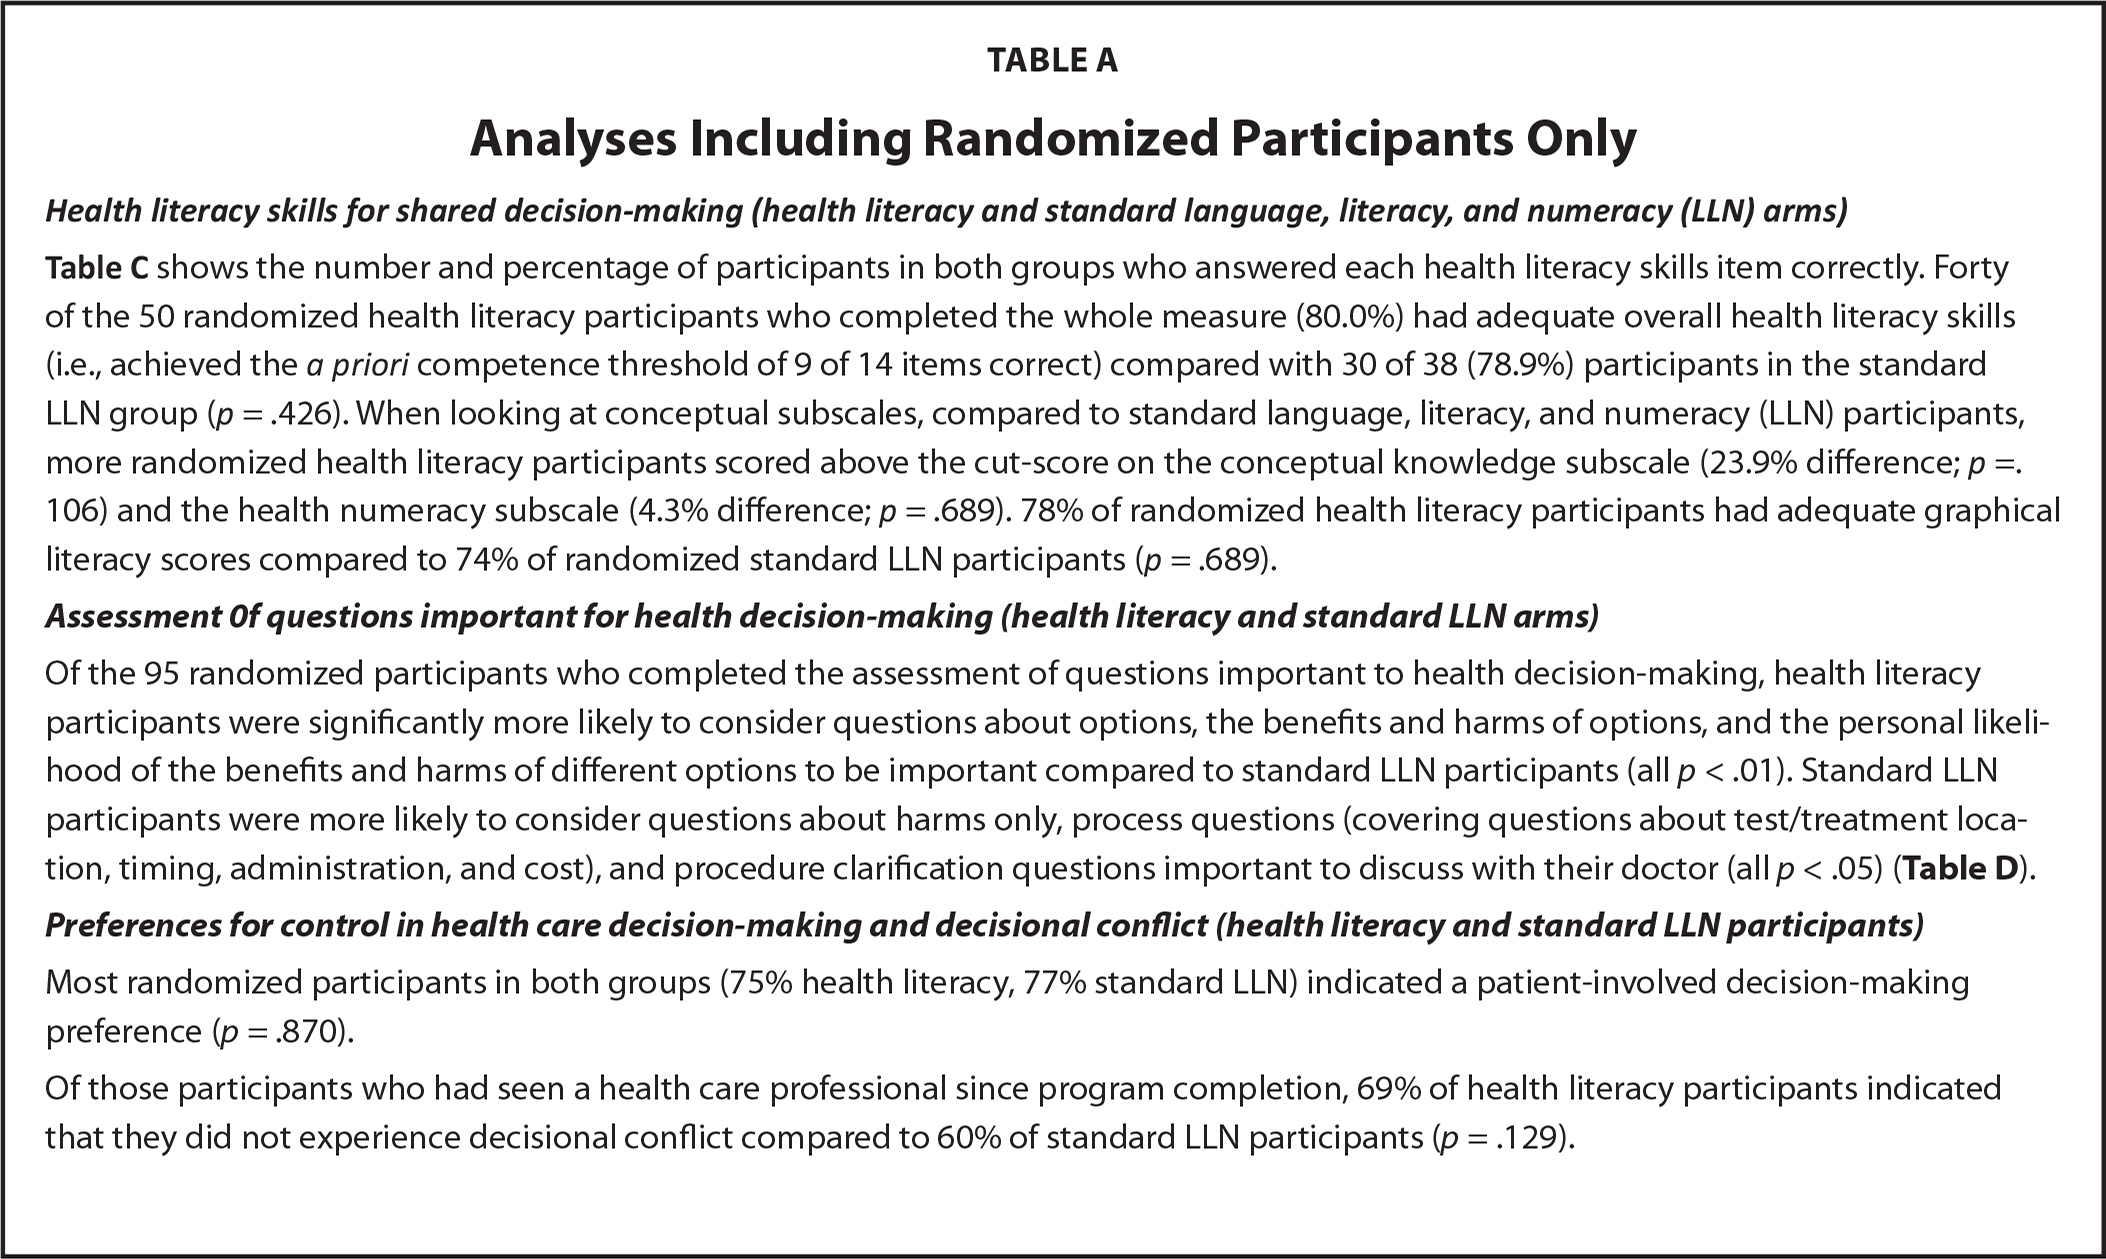 Analyses Including Randomized Participants Only